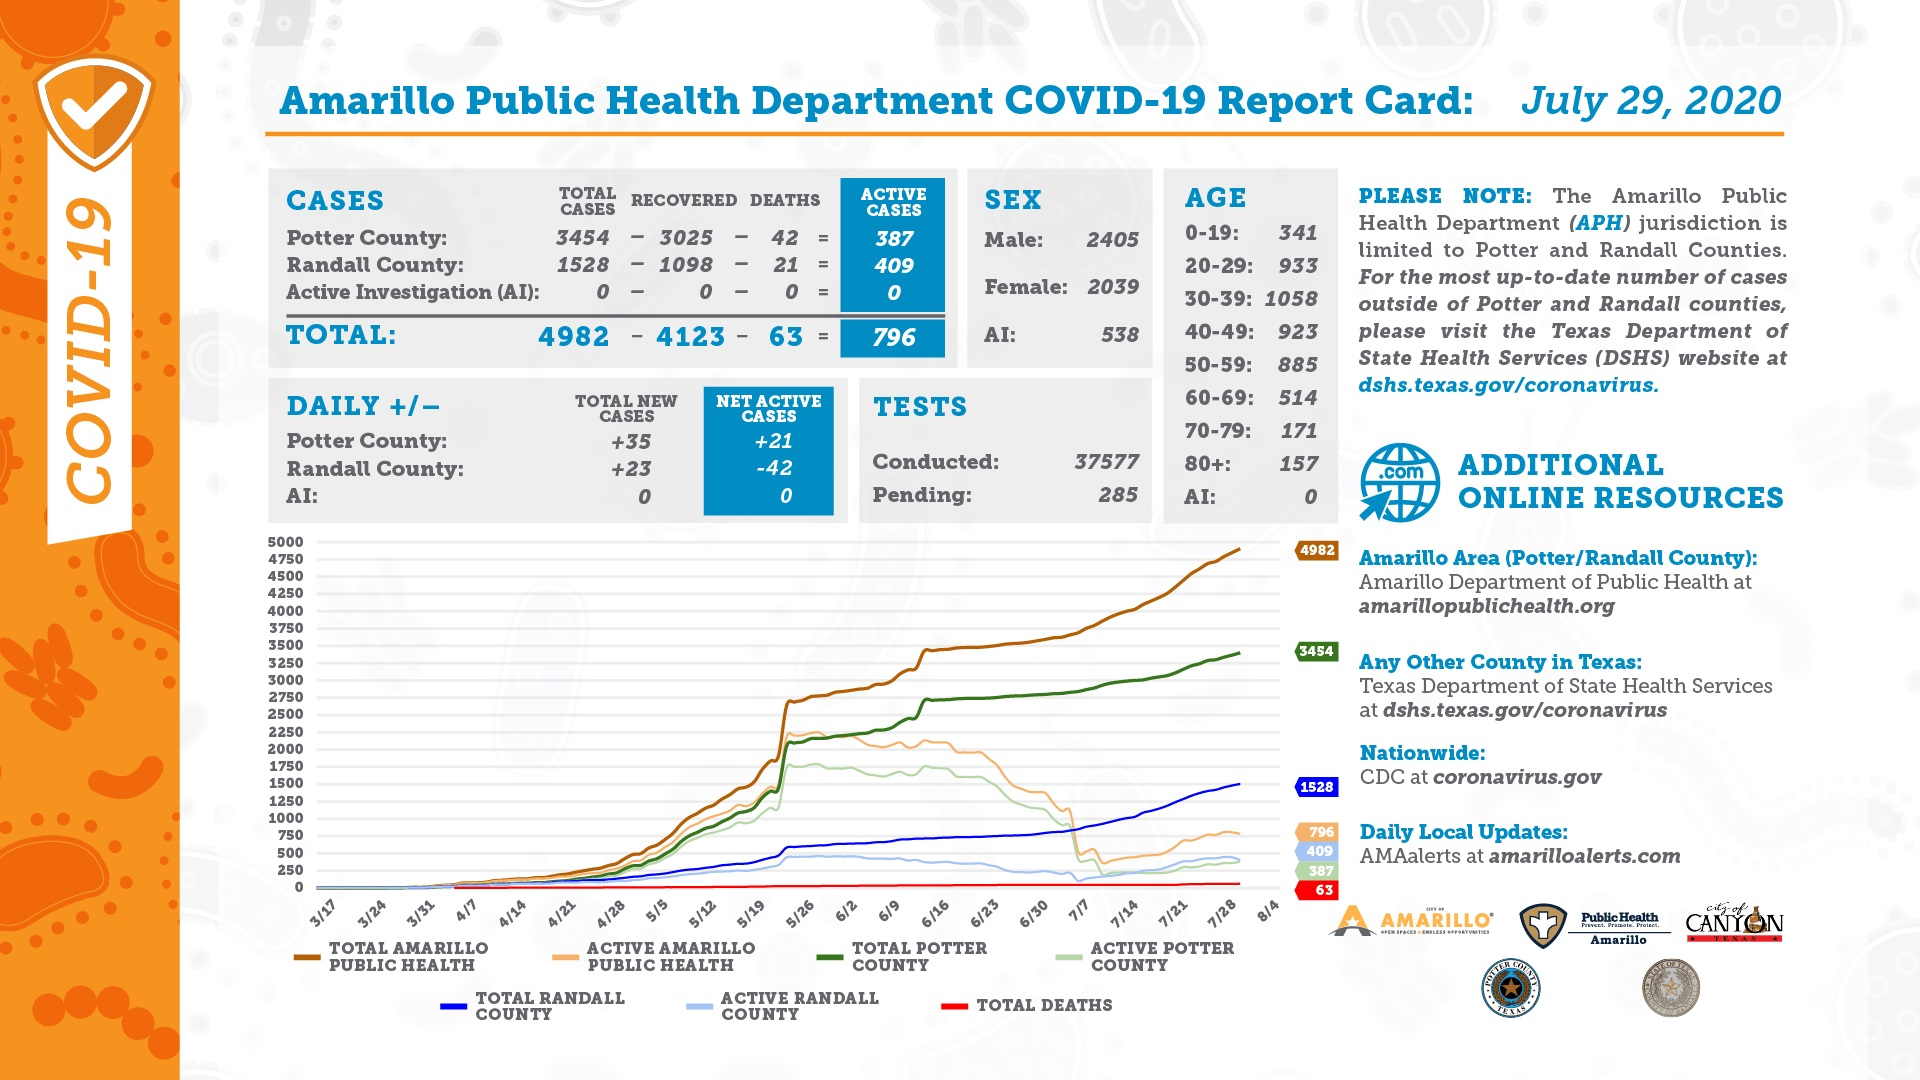 APHD COVID-19 Report Card for Wednesday 07 29 2020